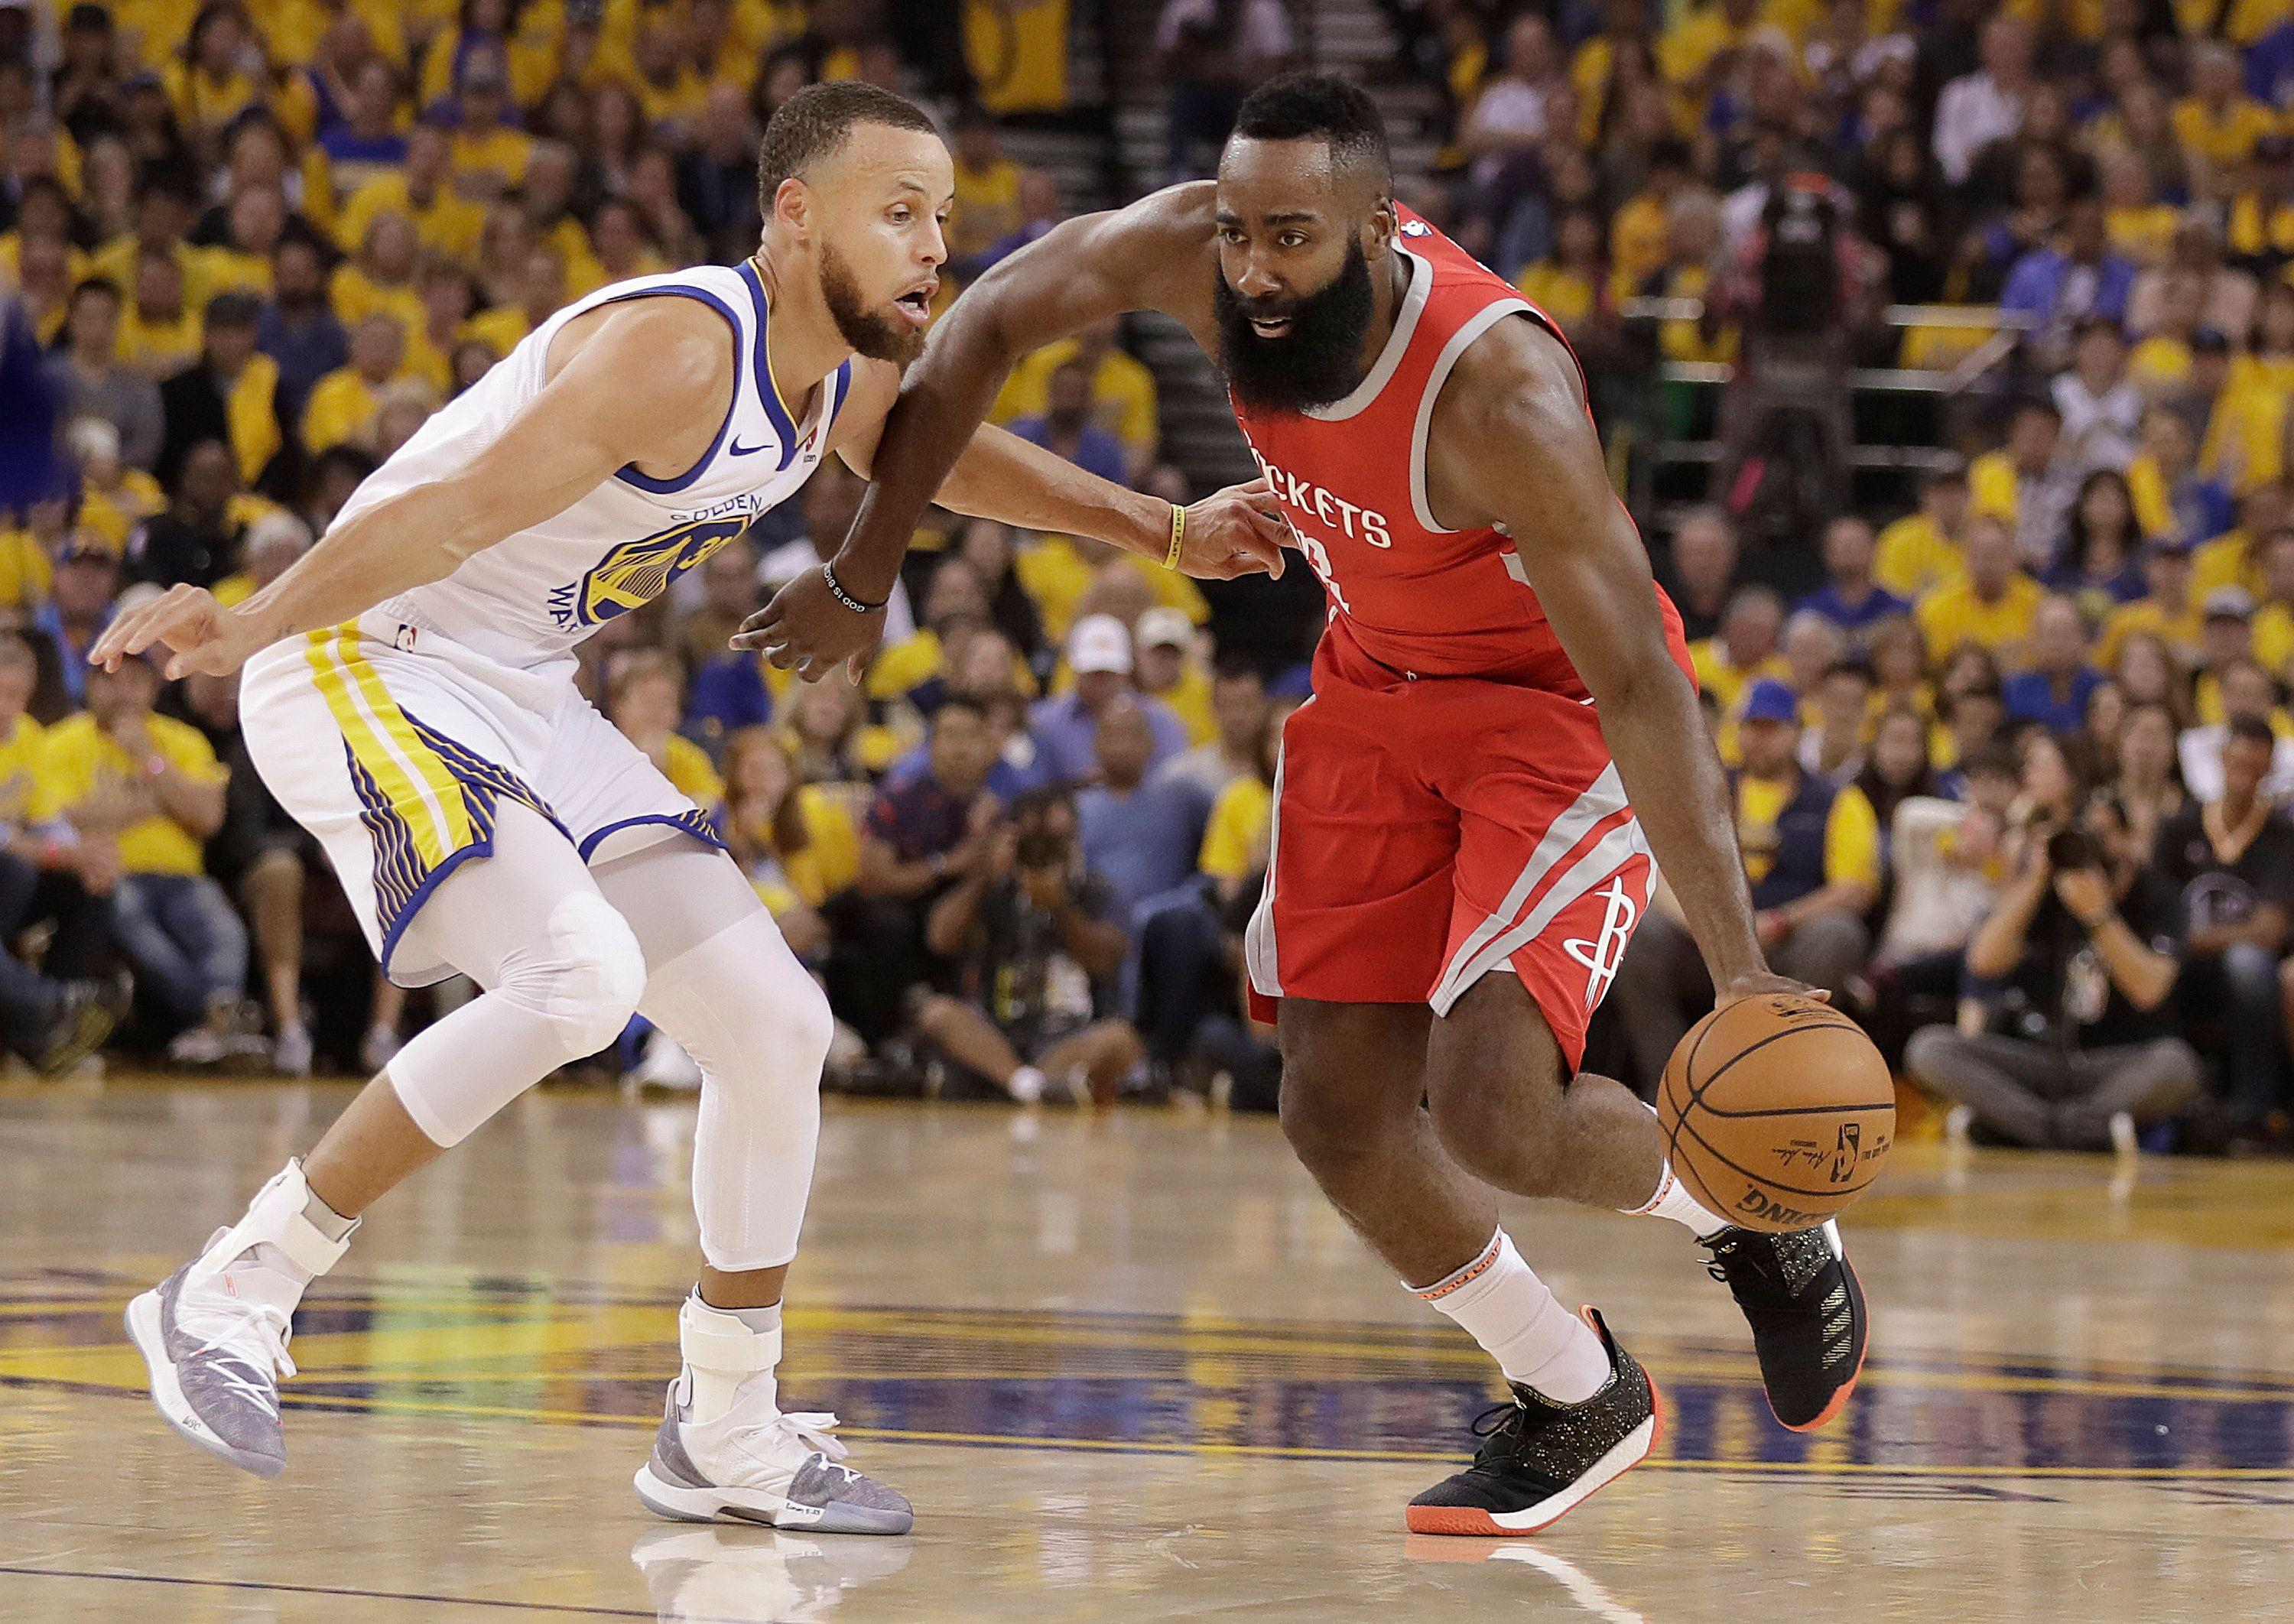 c9e2f8a8 Report: Shoe deals, not LeBron James, keeping NBA stars from 'Space Jam 2'